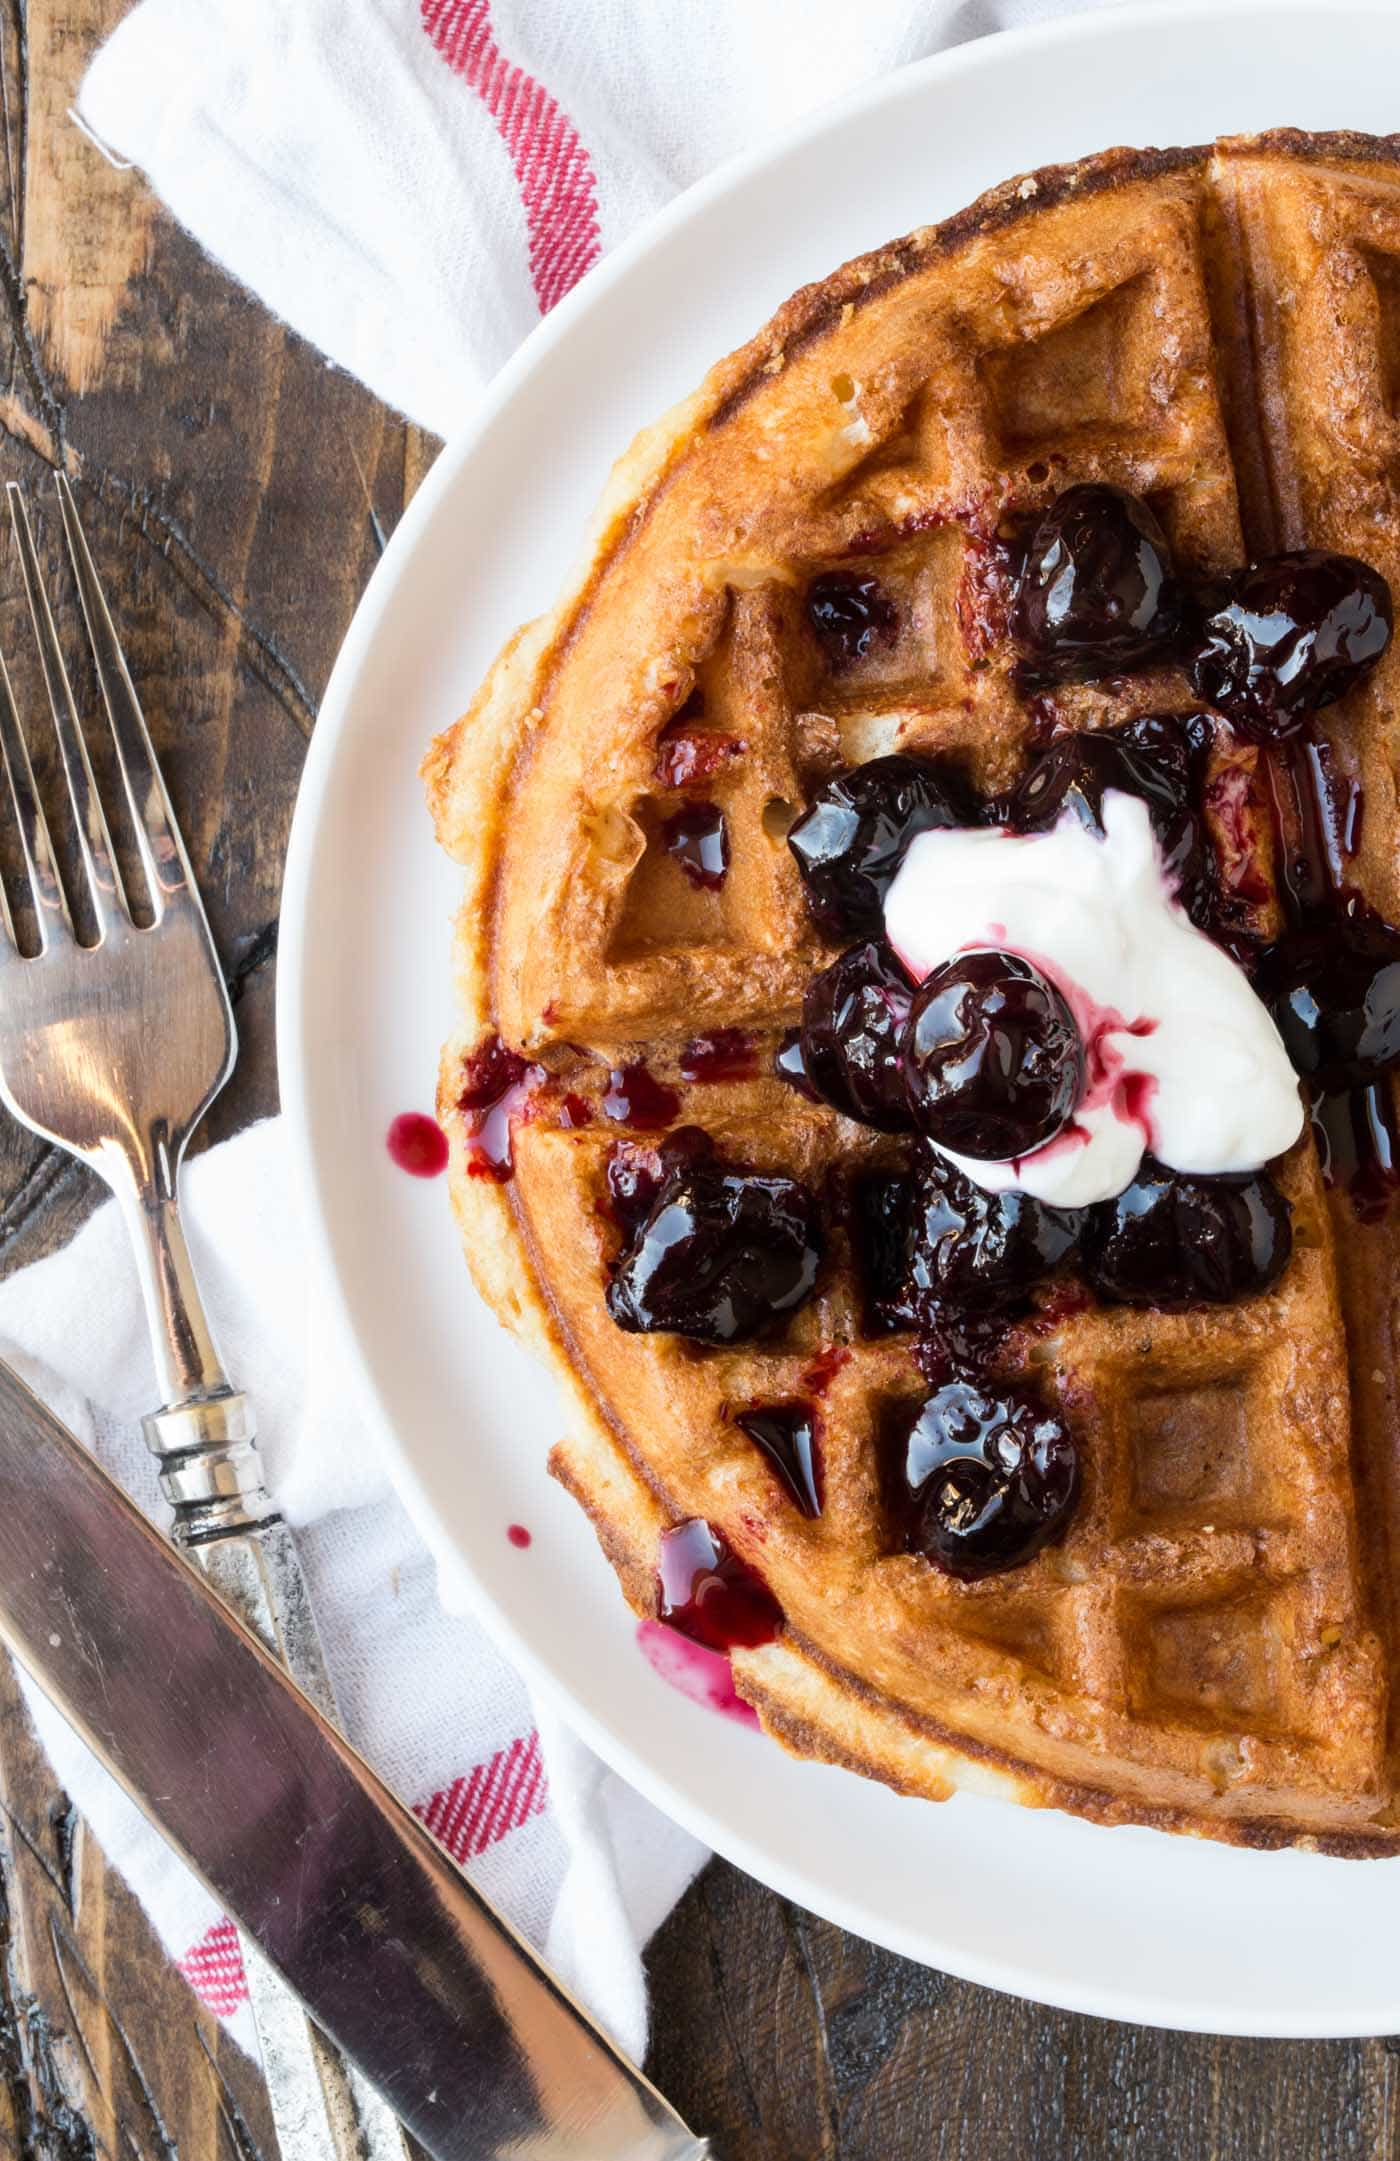 Keep these Buttermilk Waffles with Cherry-Vanilla Sauce warm in the oven for up to a half hour before guests arrive - perfect for entertaining!